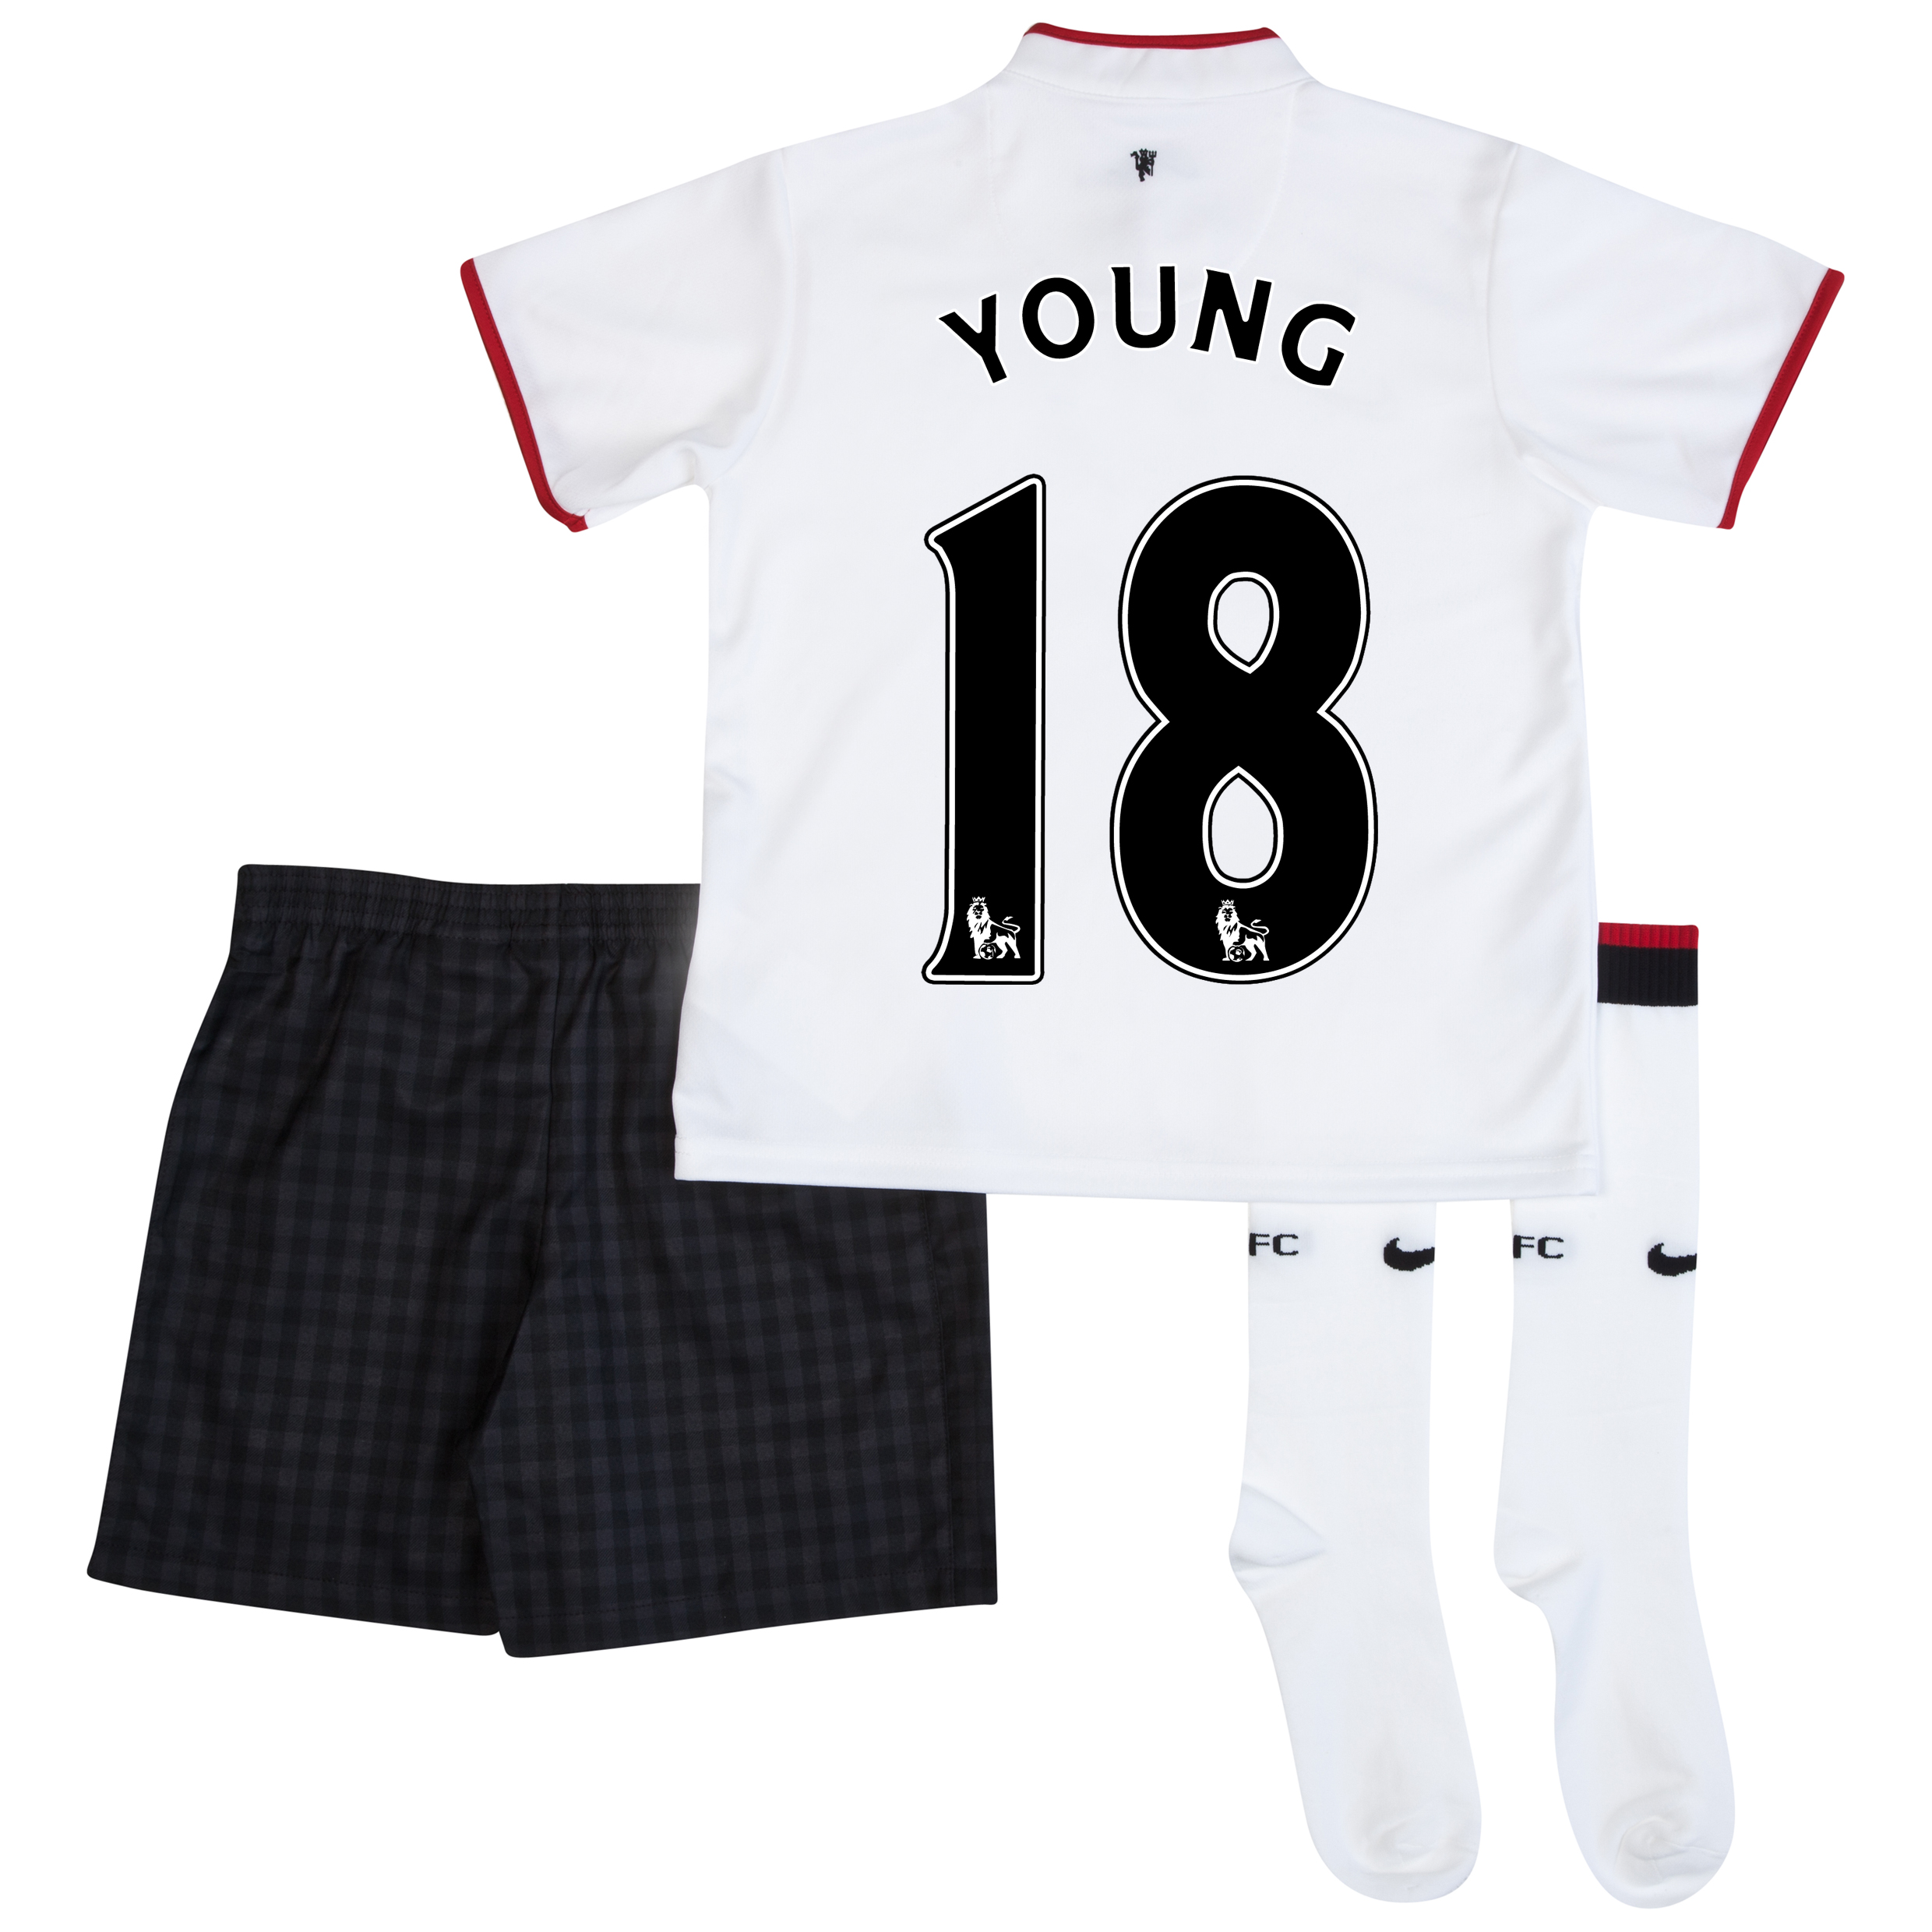 Manchester United Away Kit 2012/13 - Little Boys with Young 18 printing